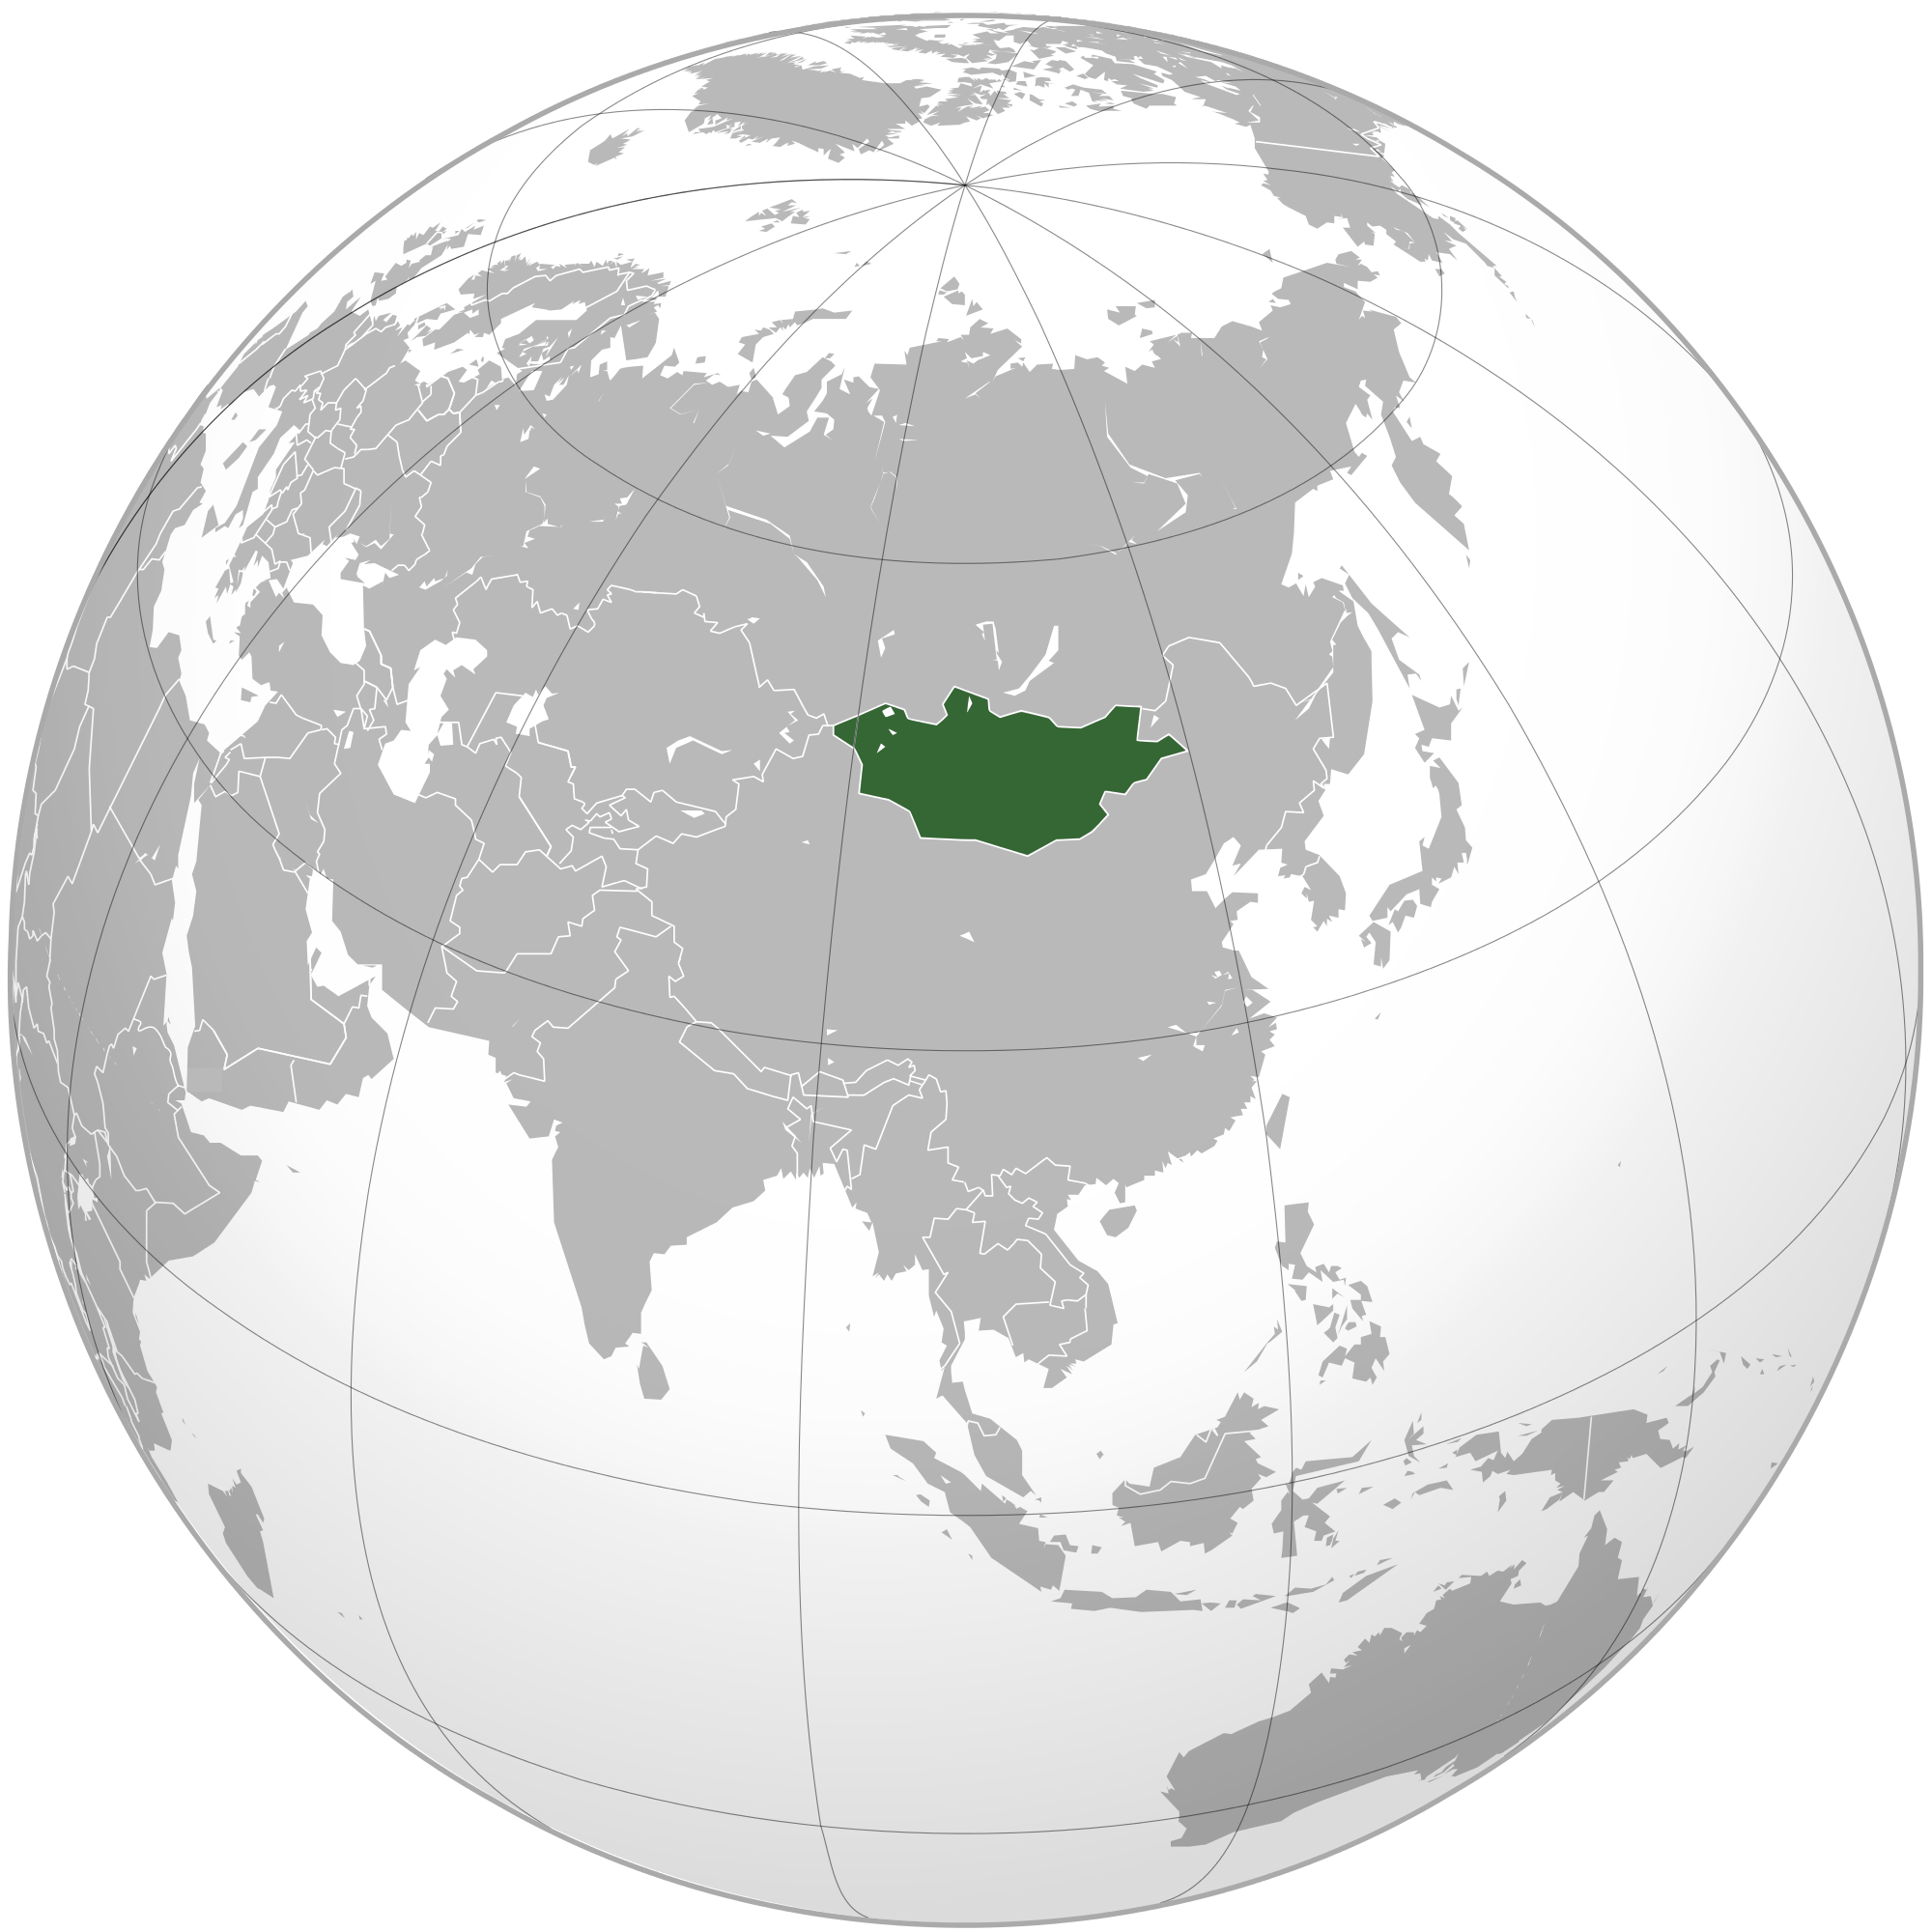 Location of the Mongolia in the World Map